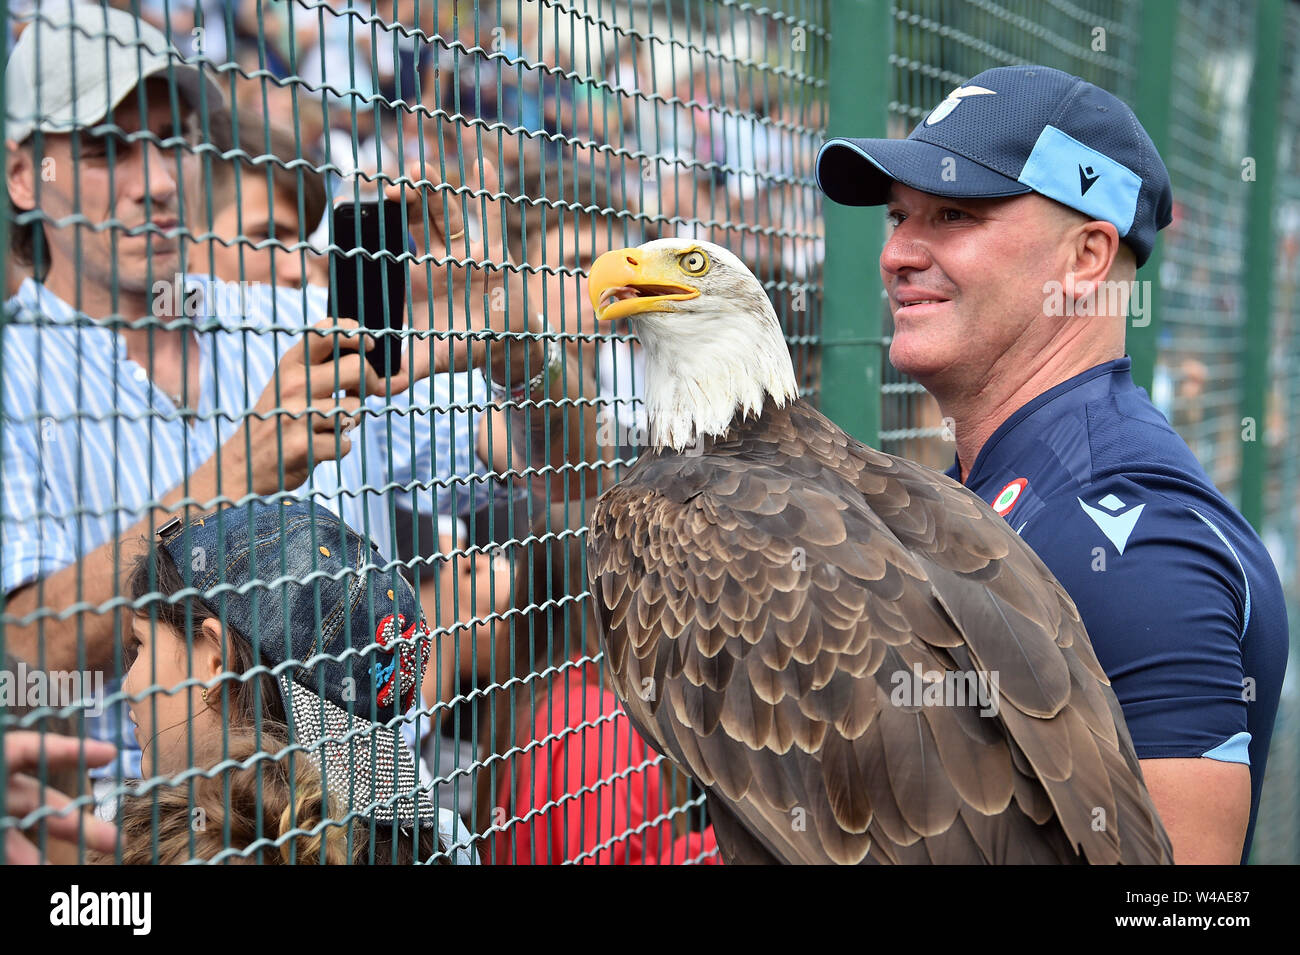 "Auronzo Di Cadore, Italia. 21st July, 2019. Foto Massimo Paolone/LaPresse21 luglio 2019 Auronzo di Cadore (Bl), Italia sport calcio Lazio vs Triestina - Amichevole Pre Campionato di calcio Serie A 2019/2020 - stadio ""Rodolfo Zandegiacomo"" Nella foto: L'aquila Olimpia Photo Massimo Paolone/LaPresse July 21, 2019 Auronzo di Cadore (Bl), Italy sport soccer Lazio vs Triestina - Friendly match Pre Italian Football Championship League A TIM 2019/2020 - ""Rodolfo Zandegiacomo"" stadium. In the pic: The eagle Olimpia Credit: LaPresse/Alamy Live News - Stock Image"